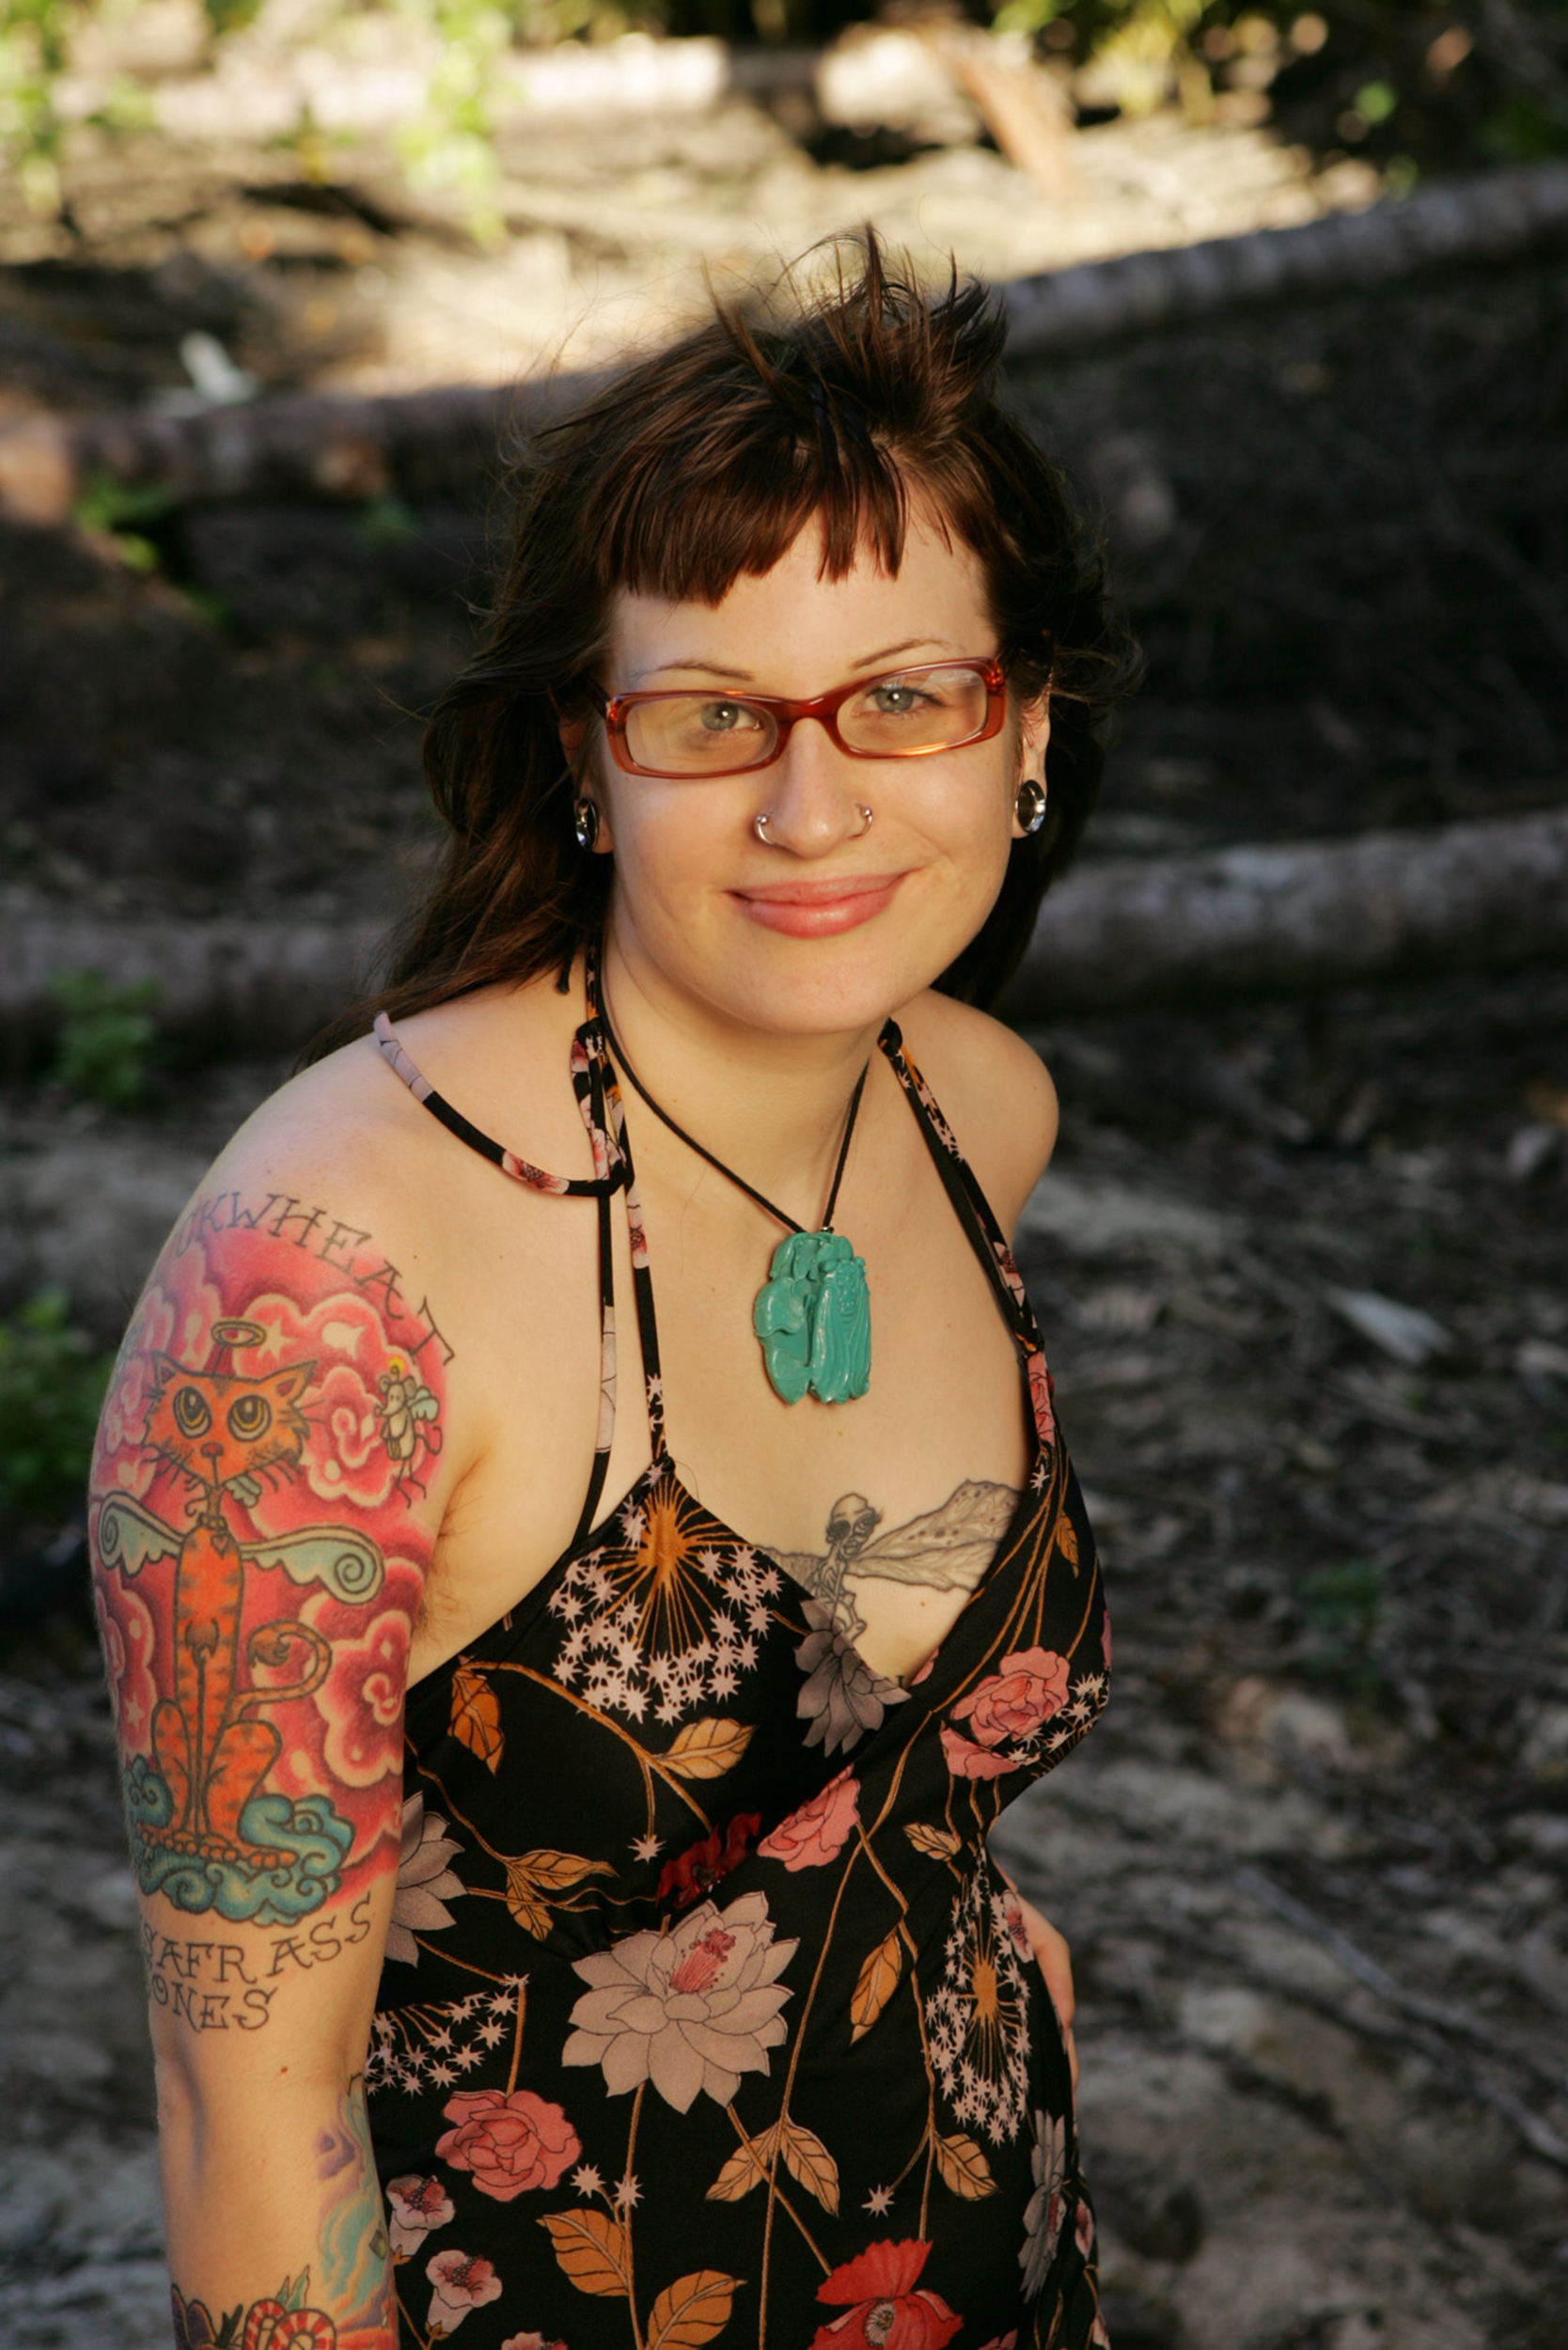 100 Images of Angie Survivor